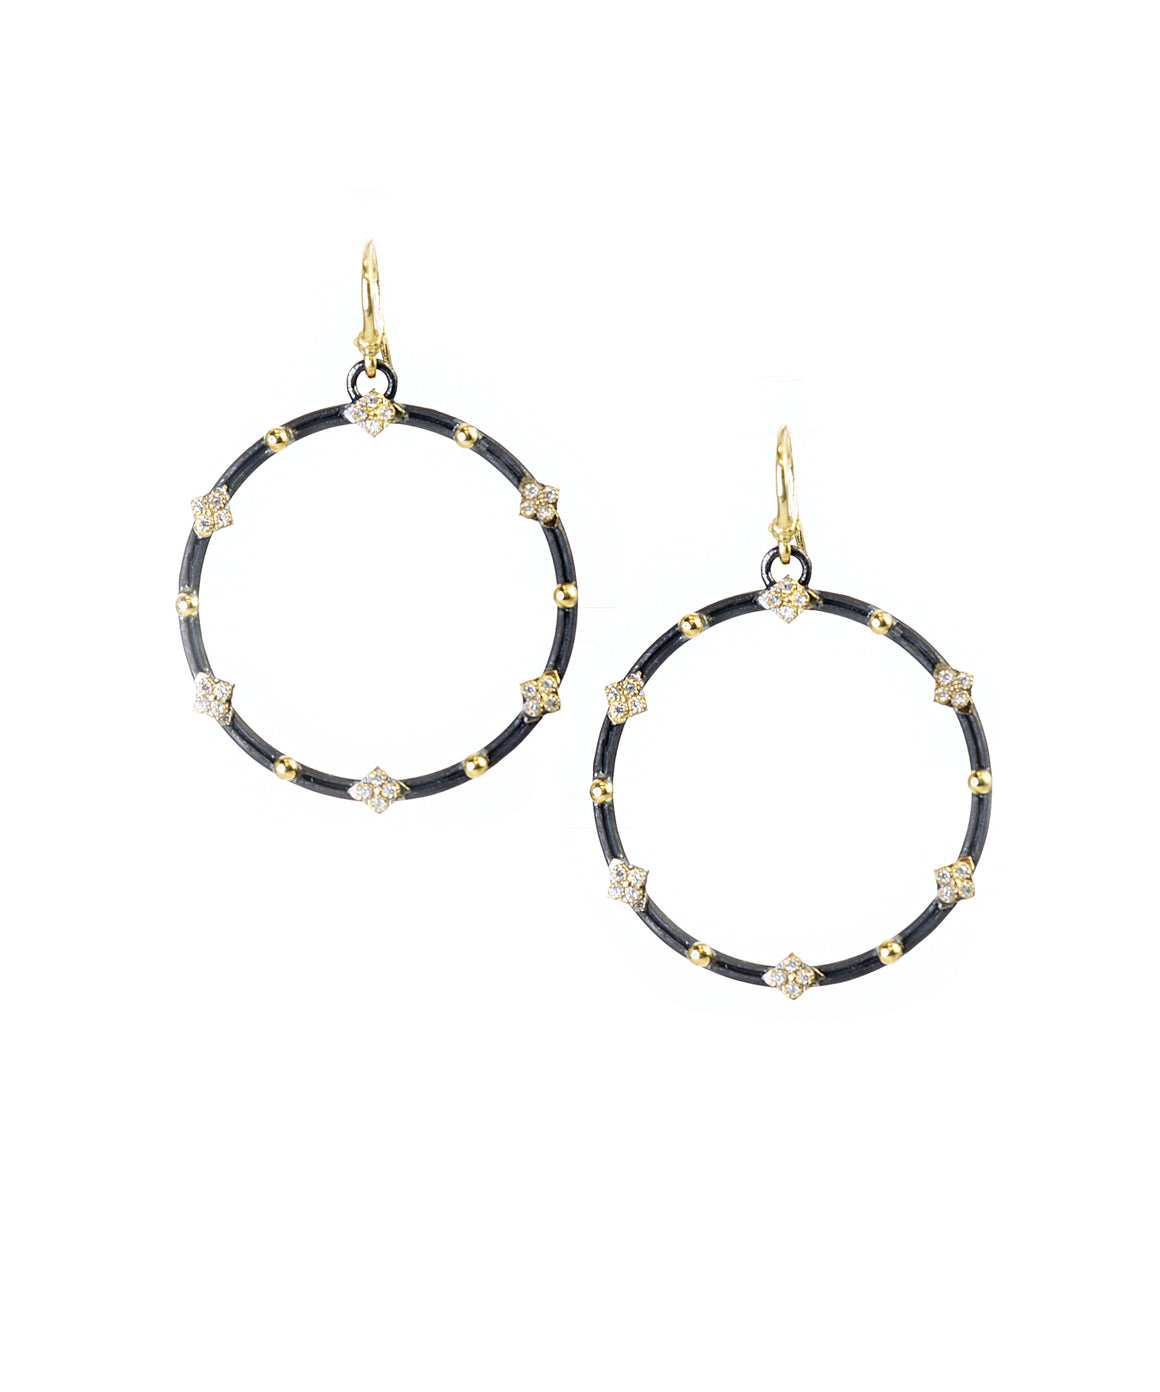 Open round crivelli earrings - Lesley Ann Jewels